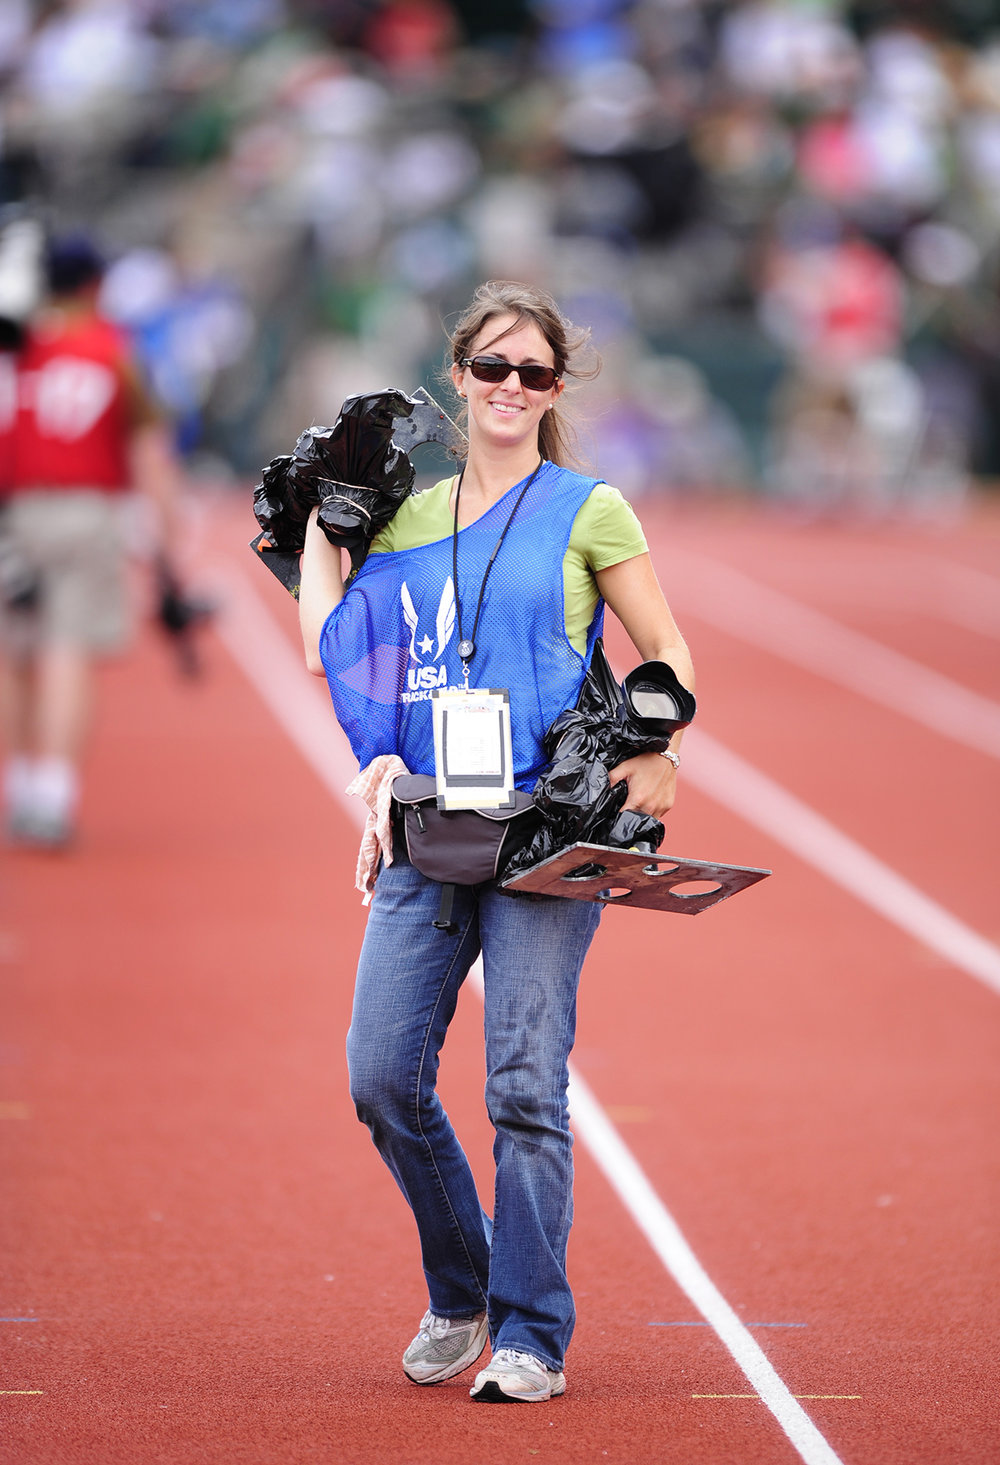 Carrying remotes back to our staging area after the Steeplechase, hence the trash bags which are the easiest and cheapest way to keep cameras dry during tracks wettest event.